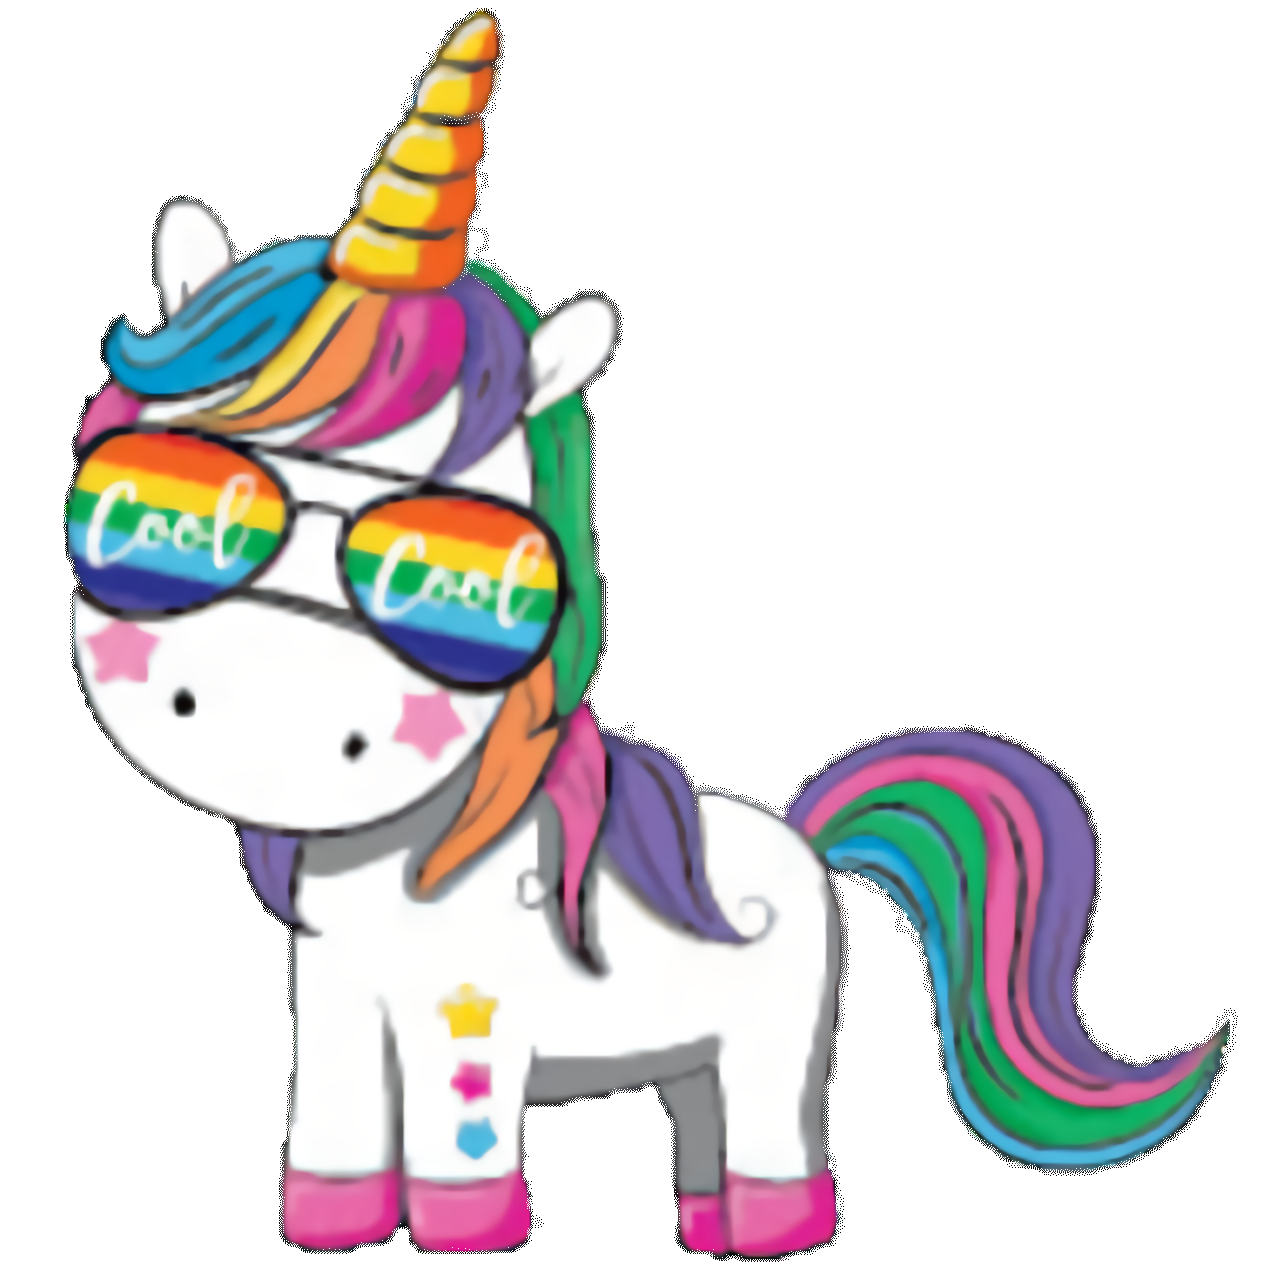 Unicorn (baby hip cool cool with sunglasses)